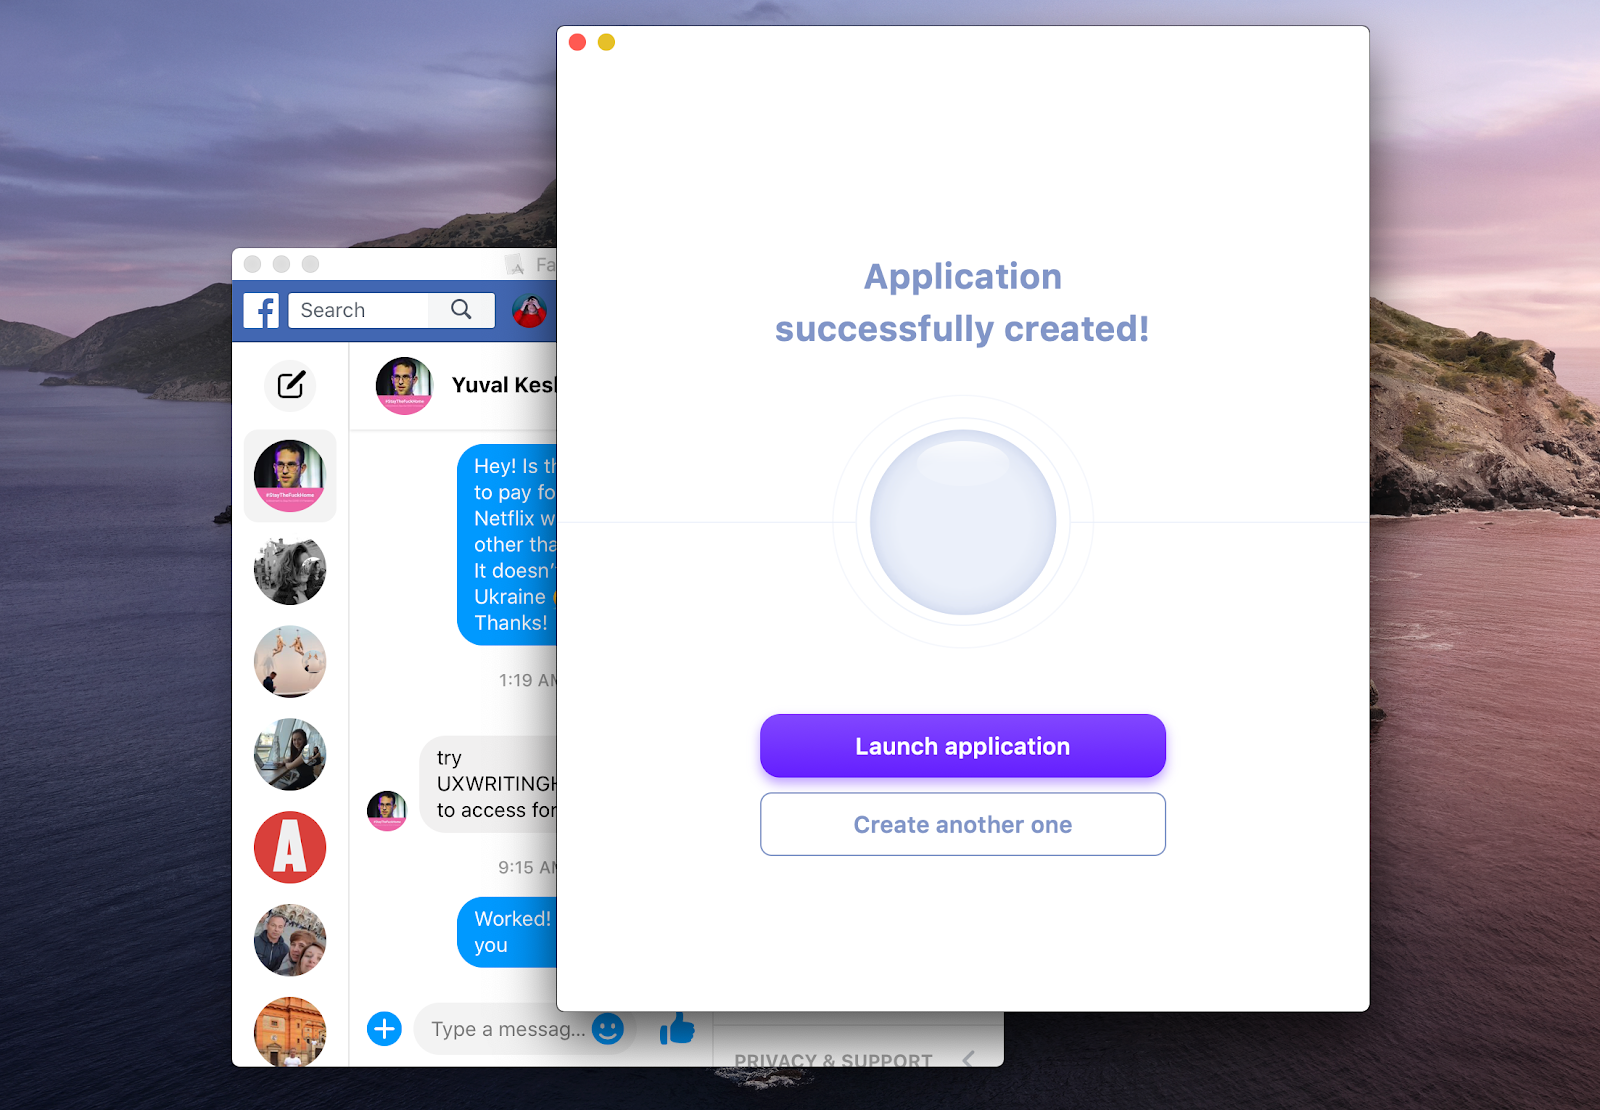 Unite app application creator Mac